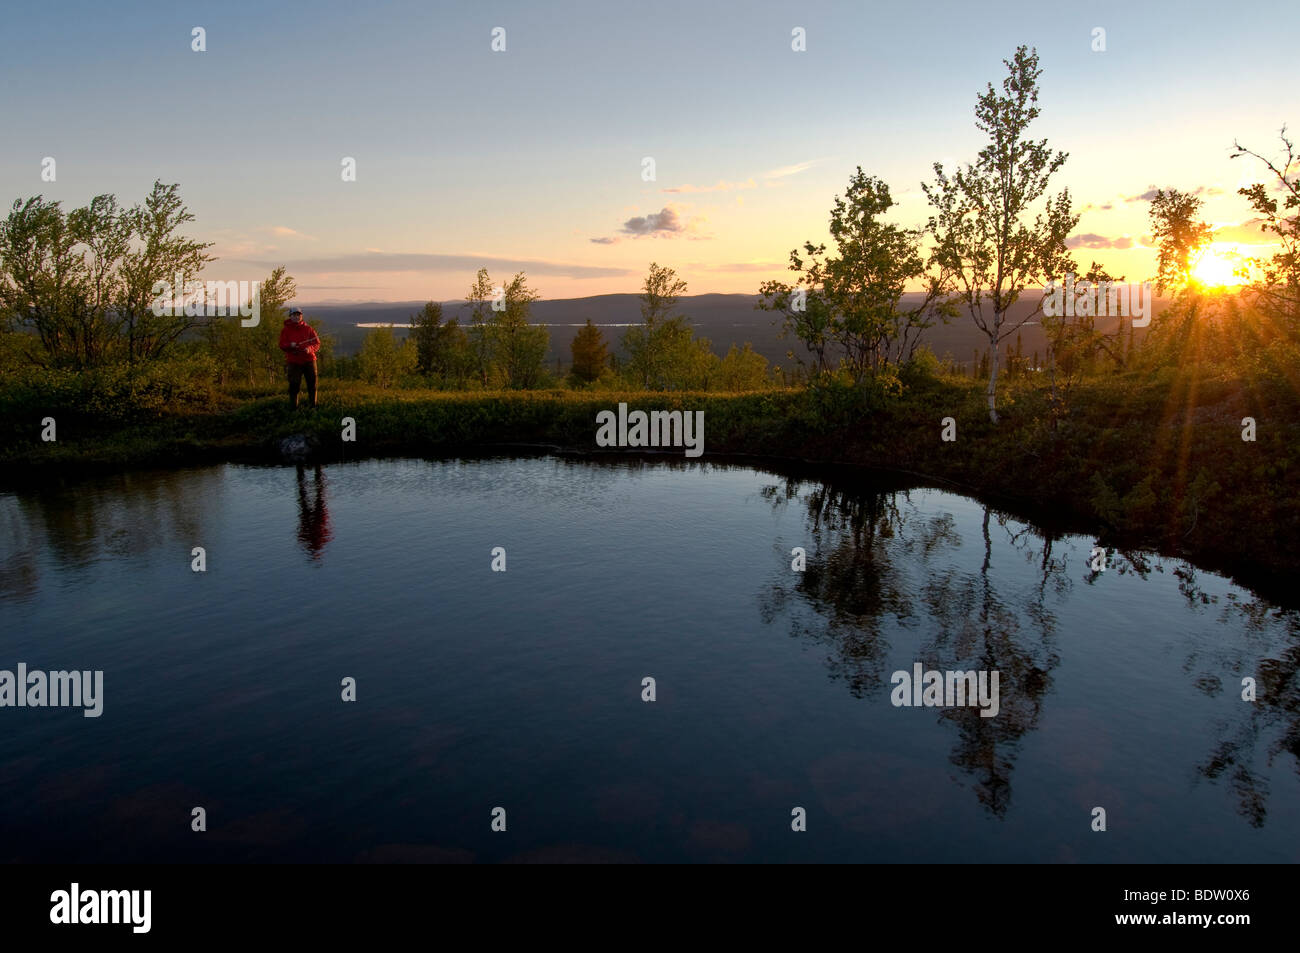 female angler at a mountain lake in lapland at midnight sun, sweden - Stock Image